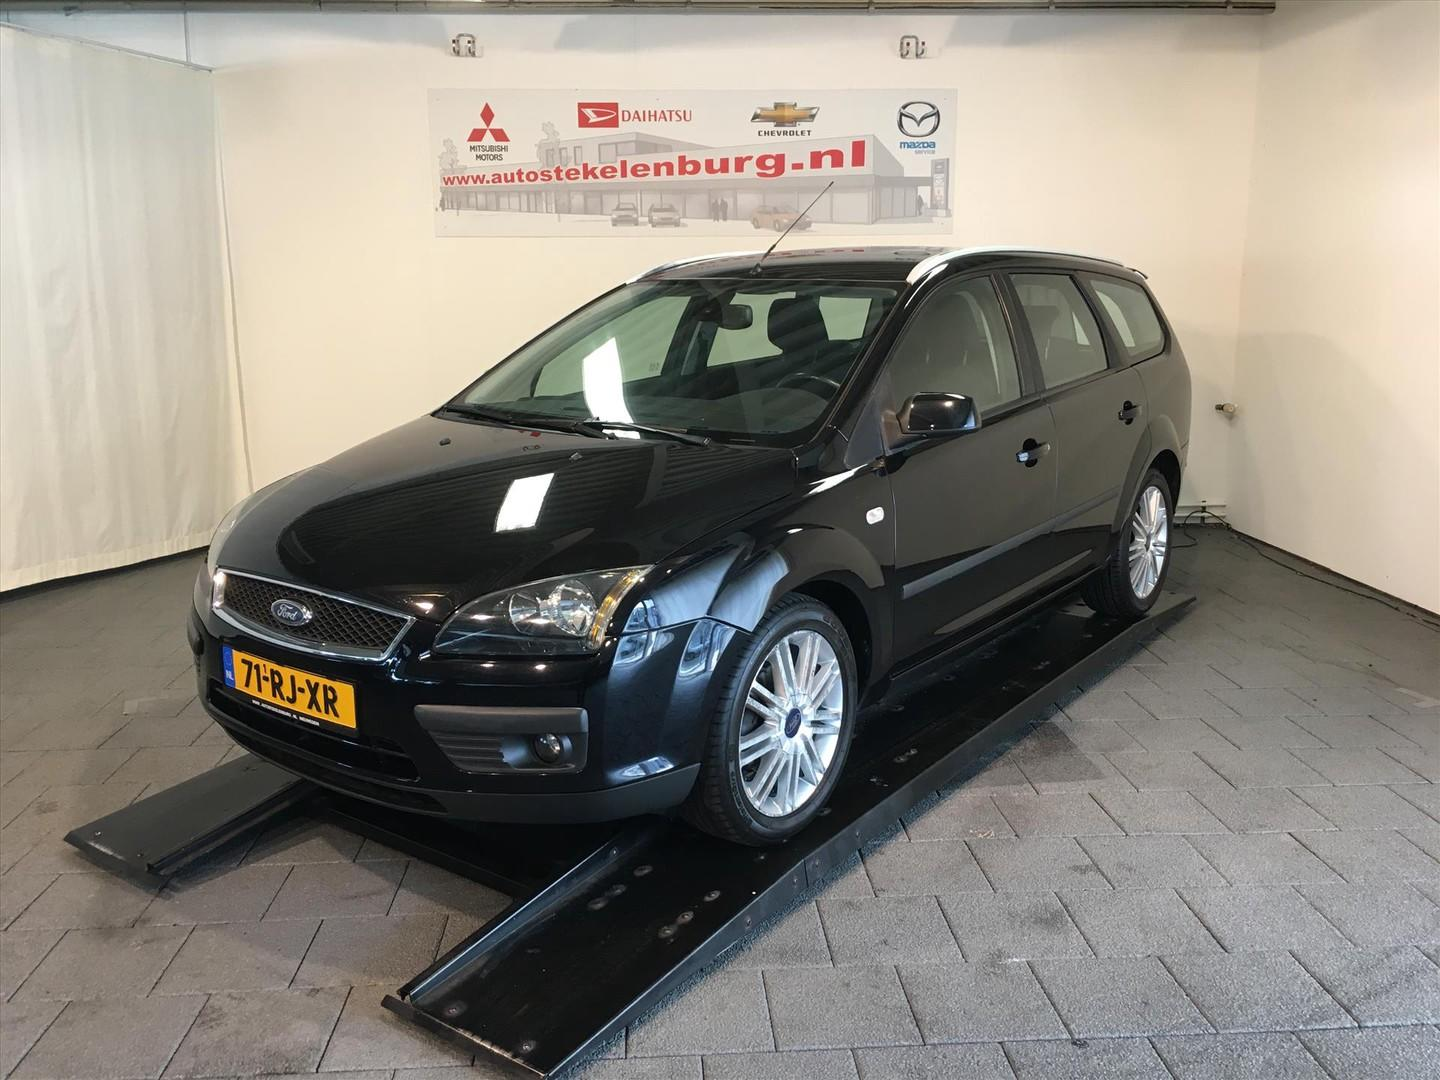 Ford Focus 1.6 first edition, automaat,cruise